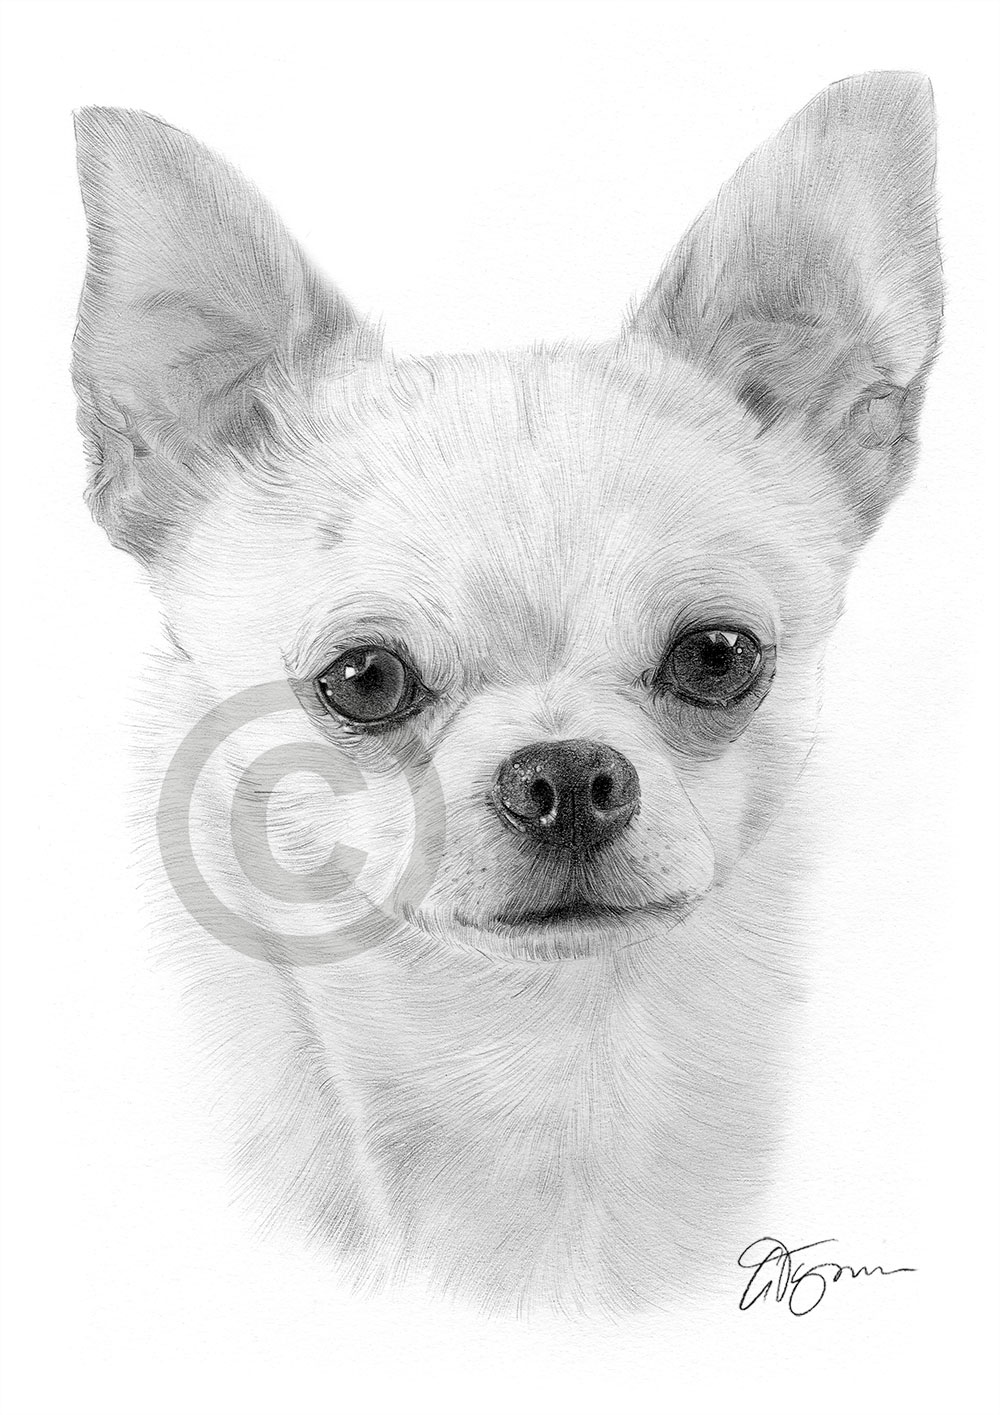 It's just a photo of Universal Drawing Of Chihuahua